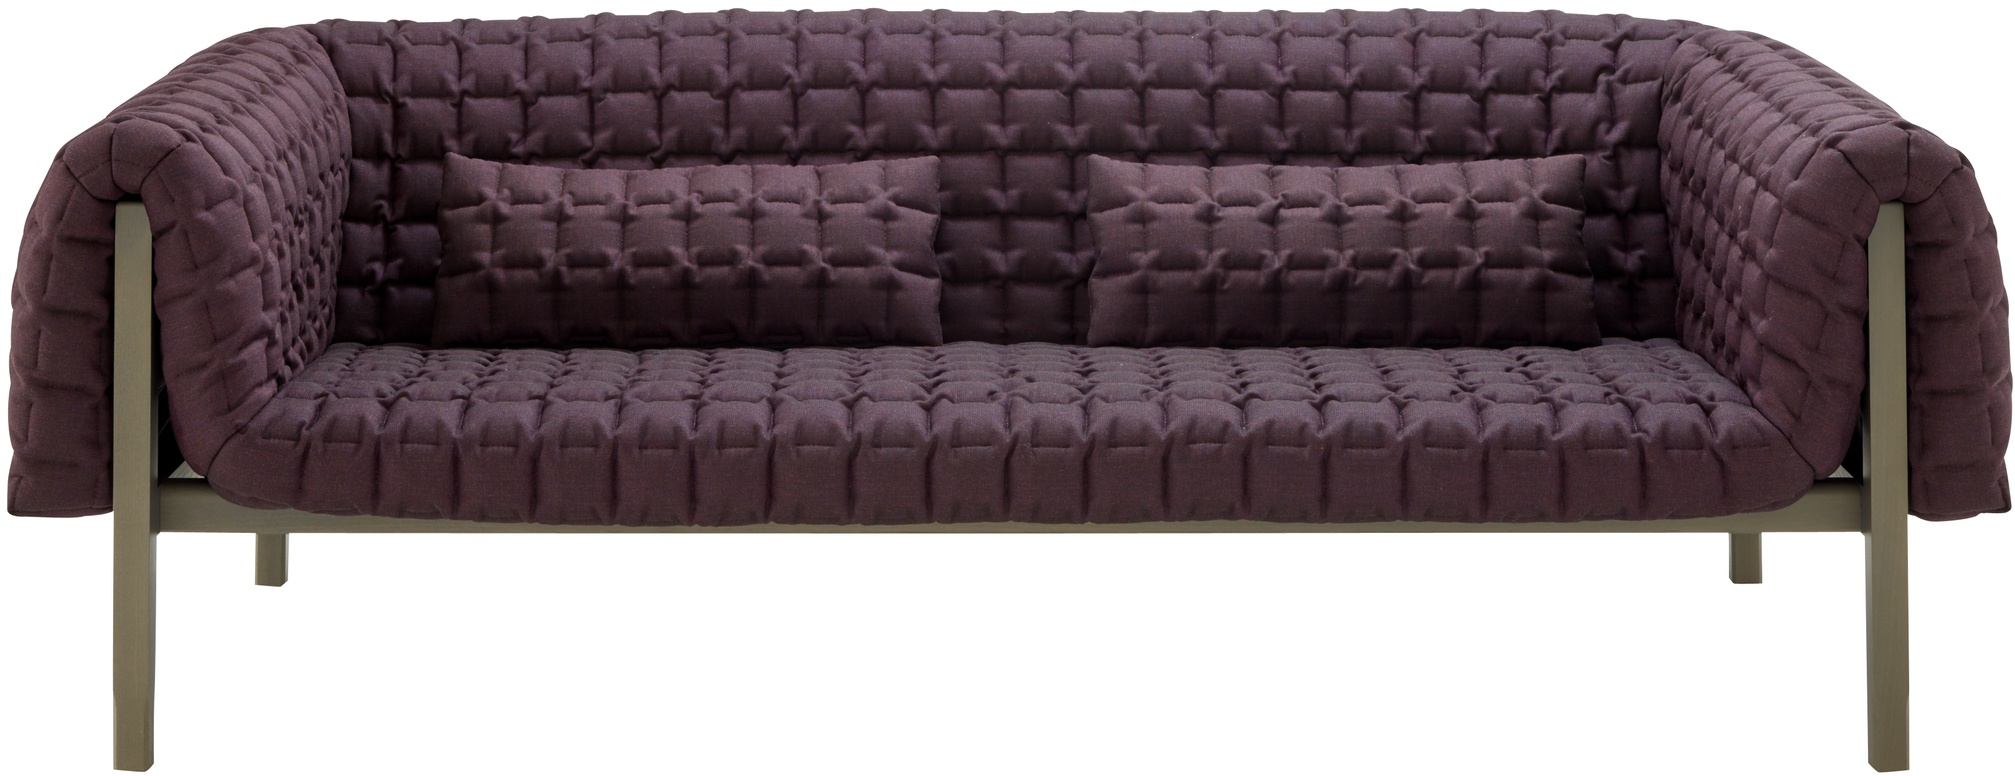 ruch sofas from designer inga semp ligne roset official site. Black Bedroom Furniture Sets. Home Design Ideas